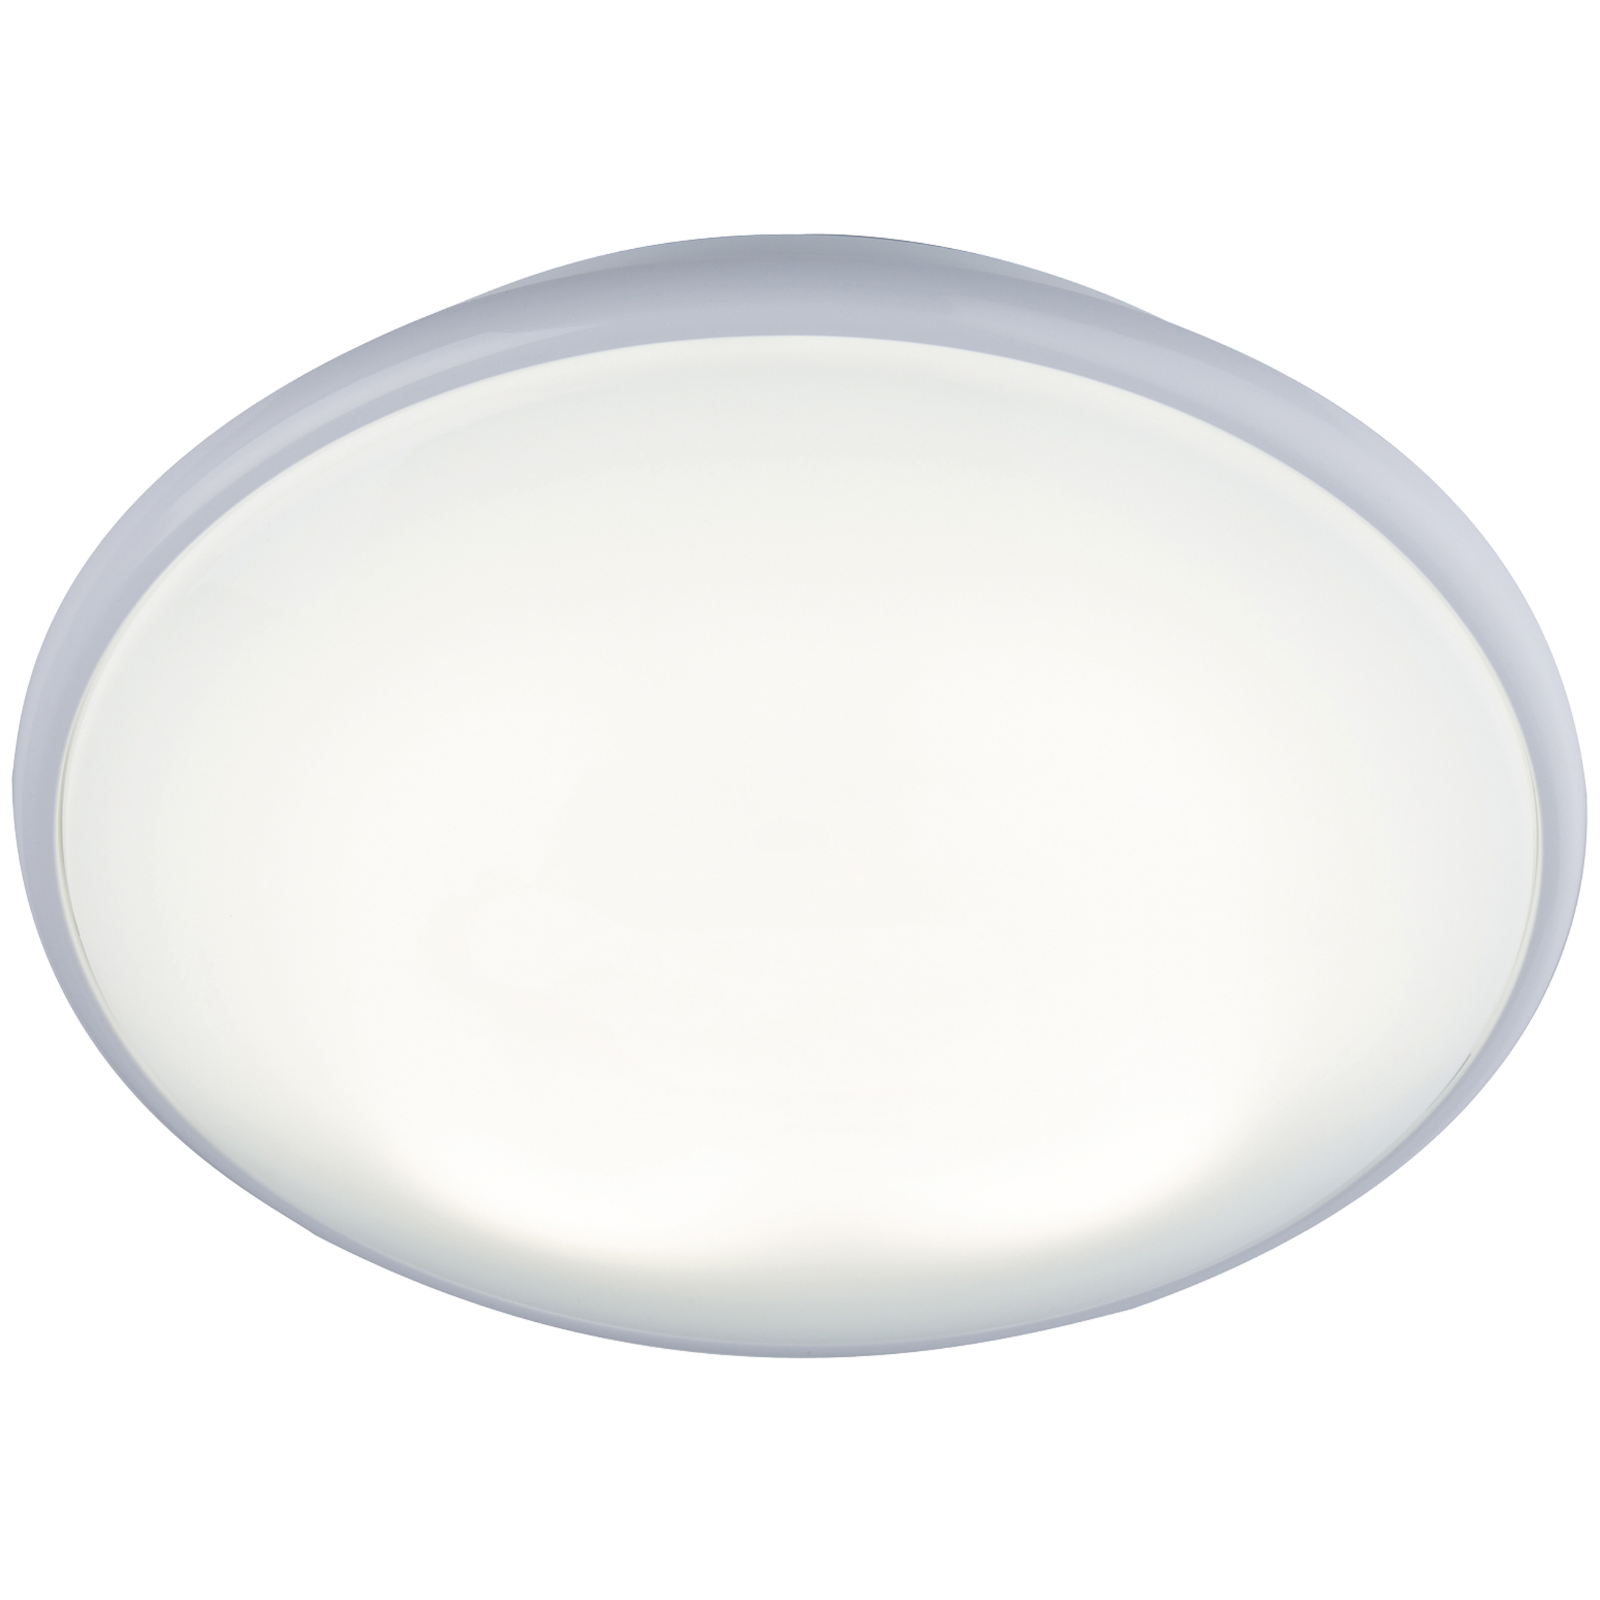 IP20 28W 2D HF Emergency Bulkhead with Opal Diffuser and White Base